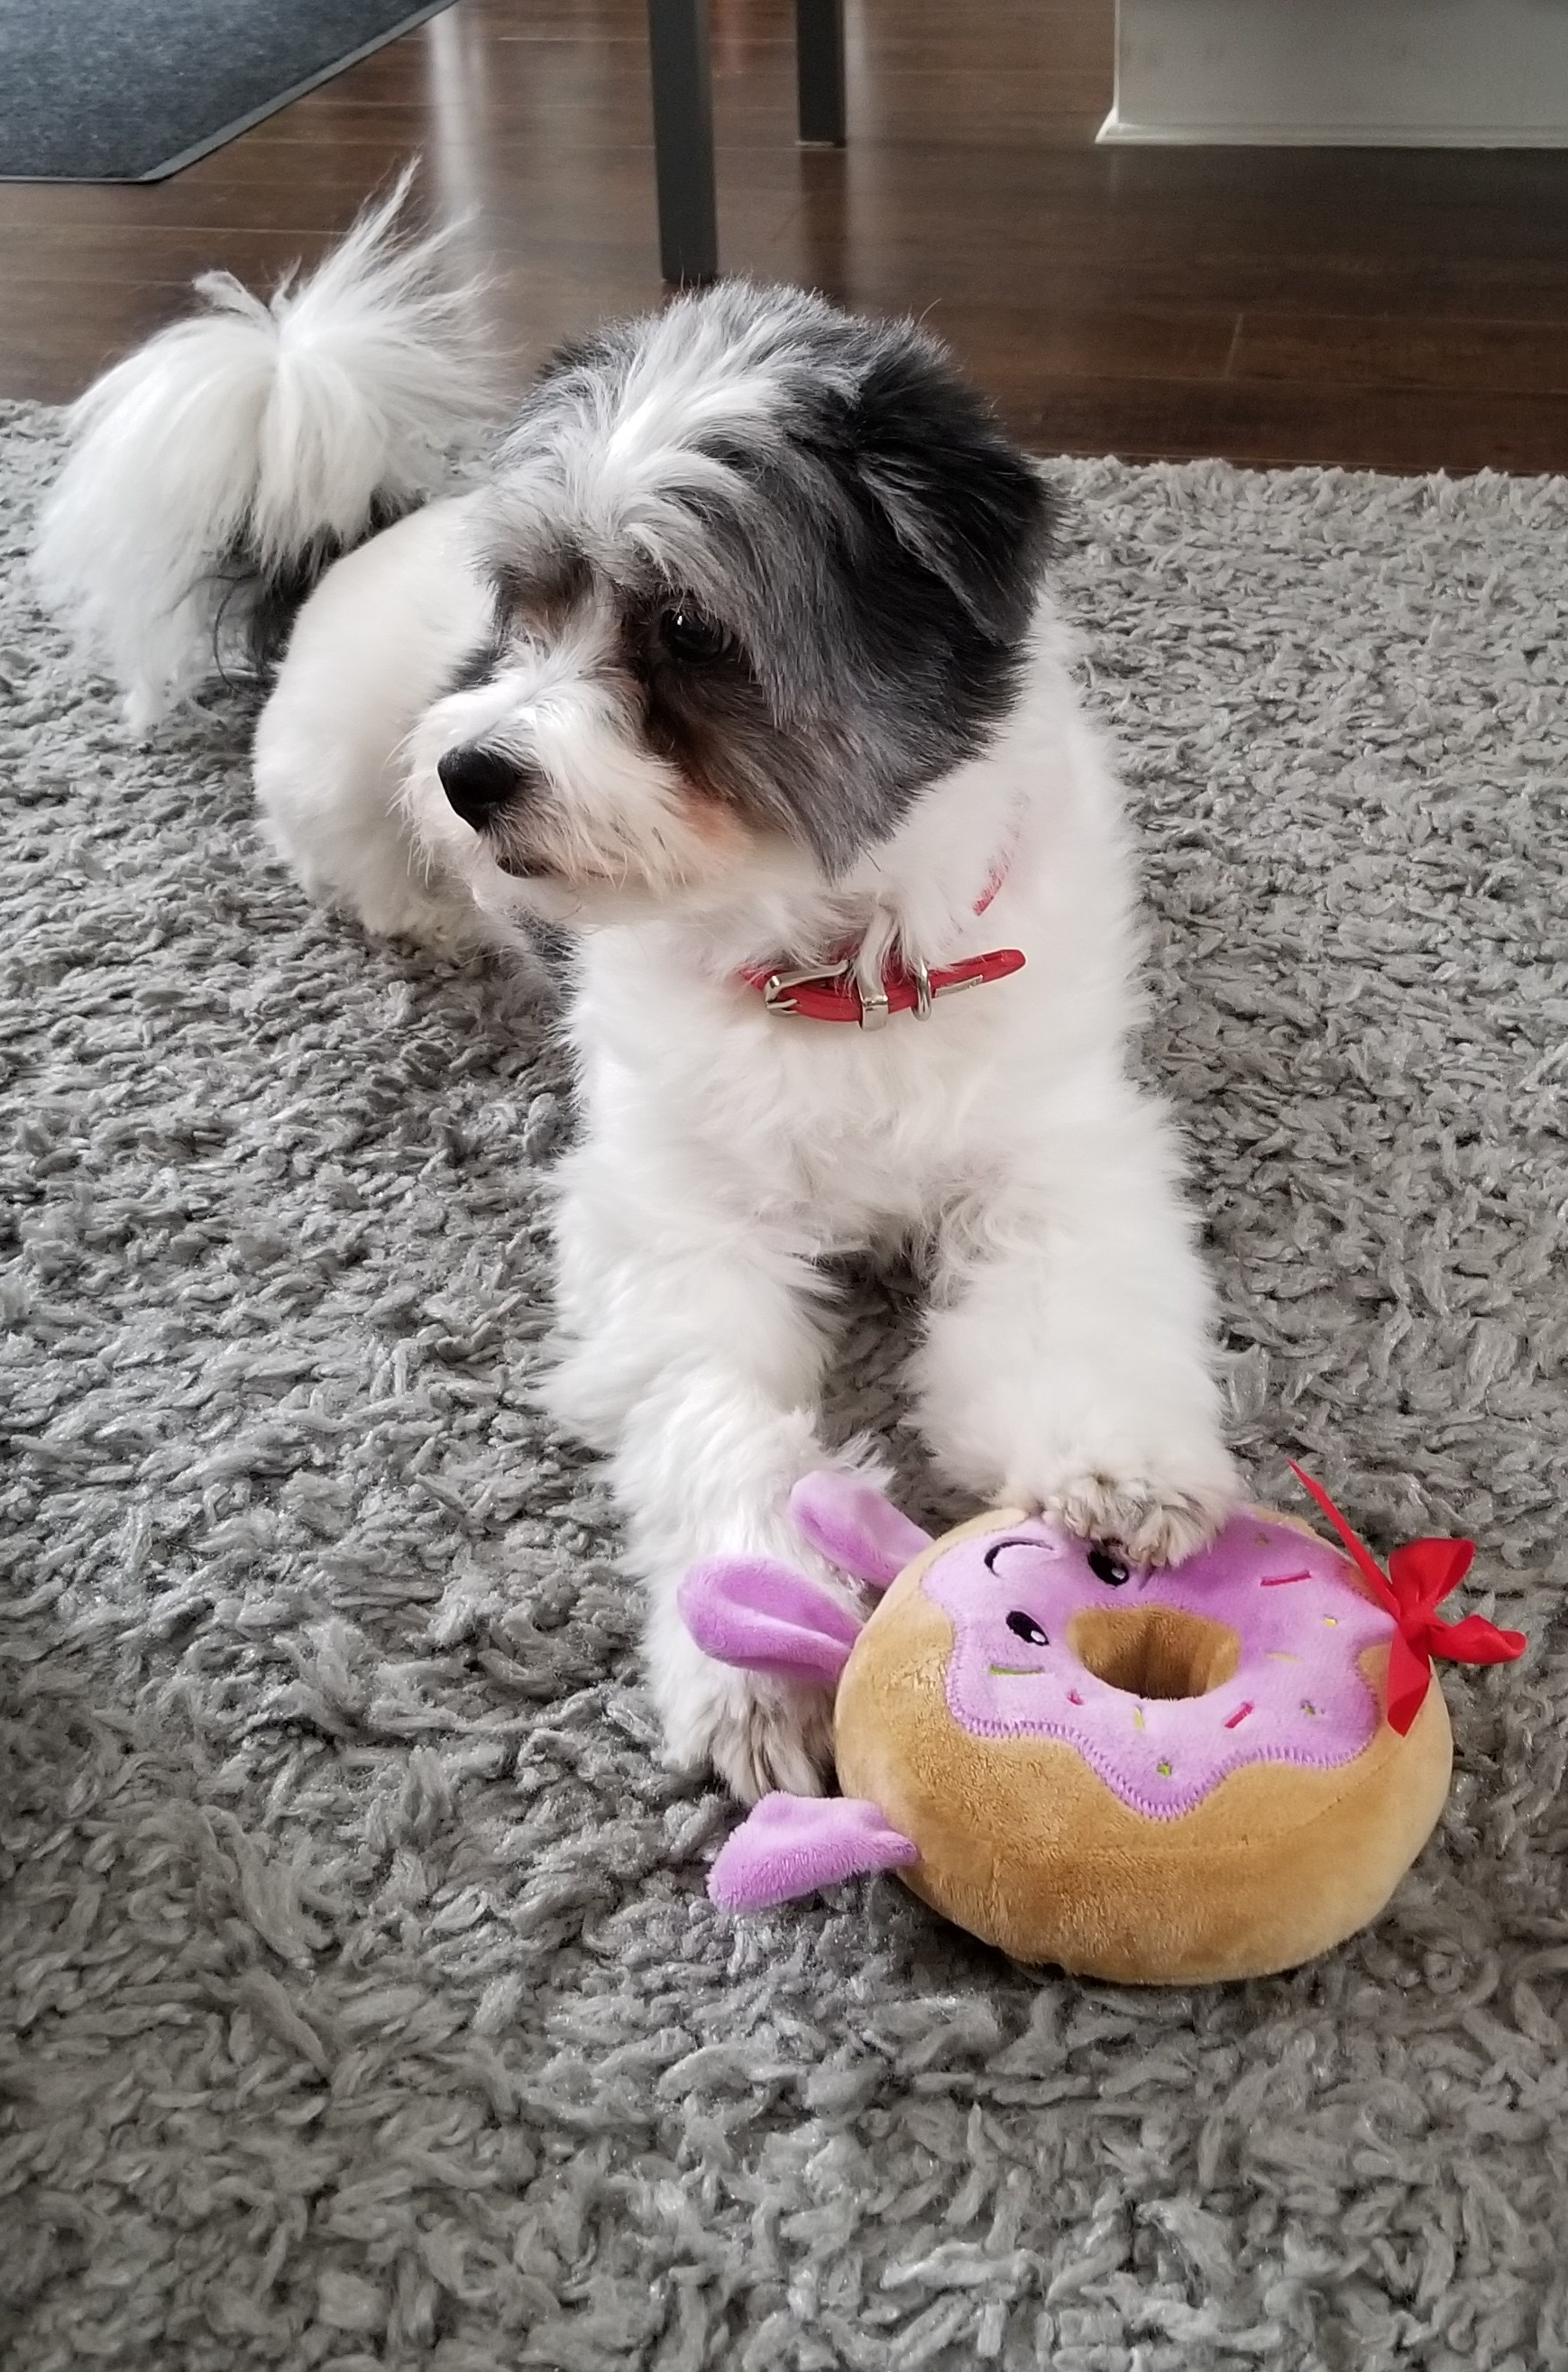 Bently & his donut